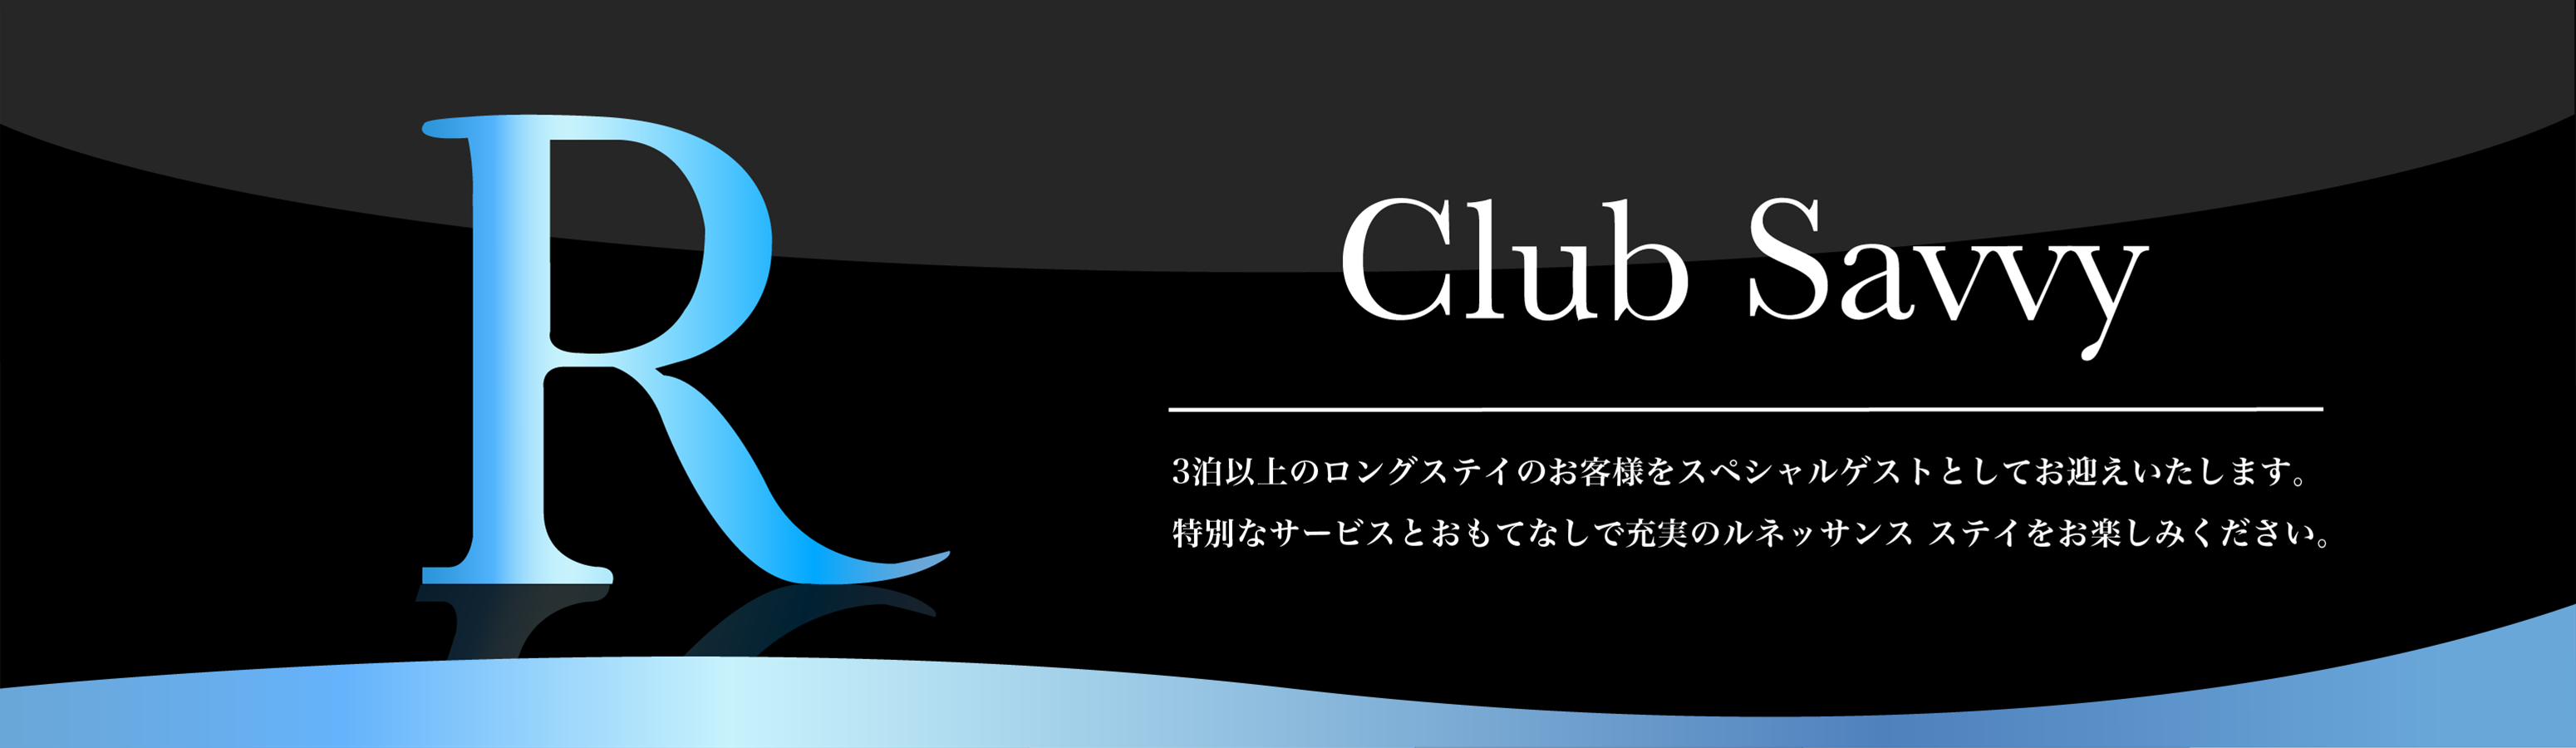 ClubSavvy ブレックファースト&ランチ